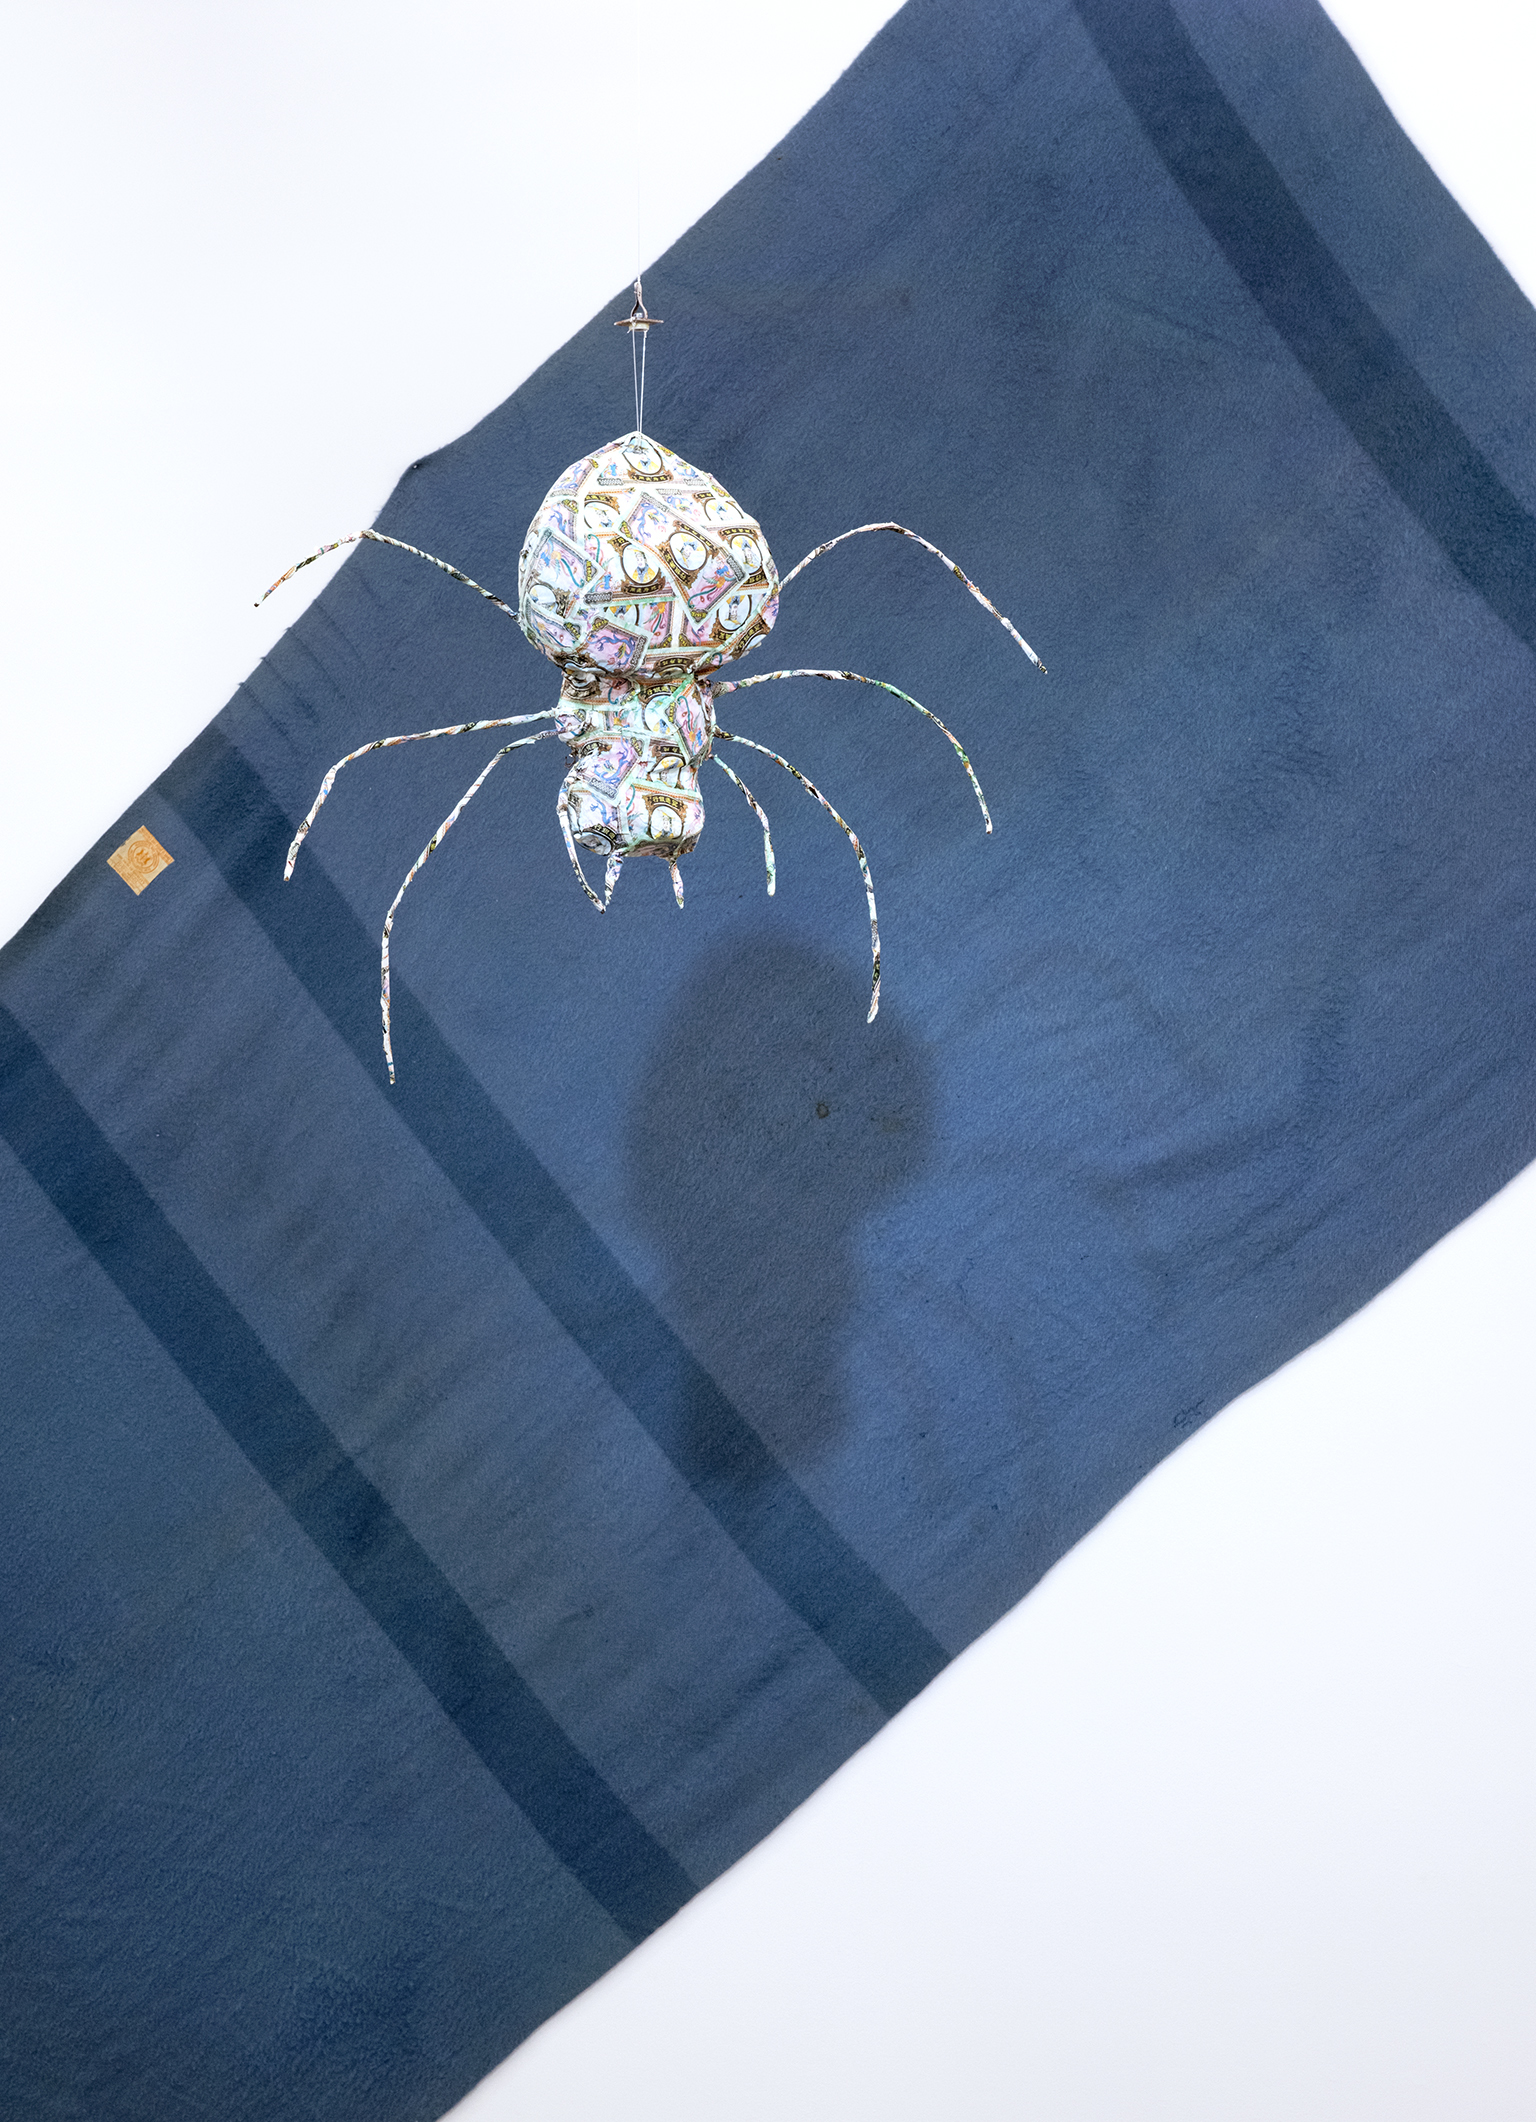 ​Jerry Pethick, Bigger than a book, Wilder than a Tree (detail), 1994–1997, found book Irish Giant, paint, graphite on linen, styrofoam, cibachrome photograph, wool blanket, spotlight, papier-mâché, metal spider, dimensions variable​ by